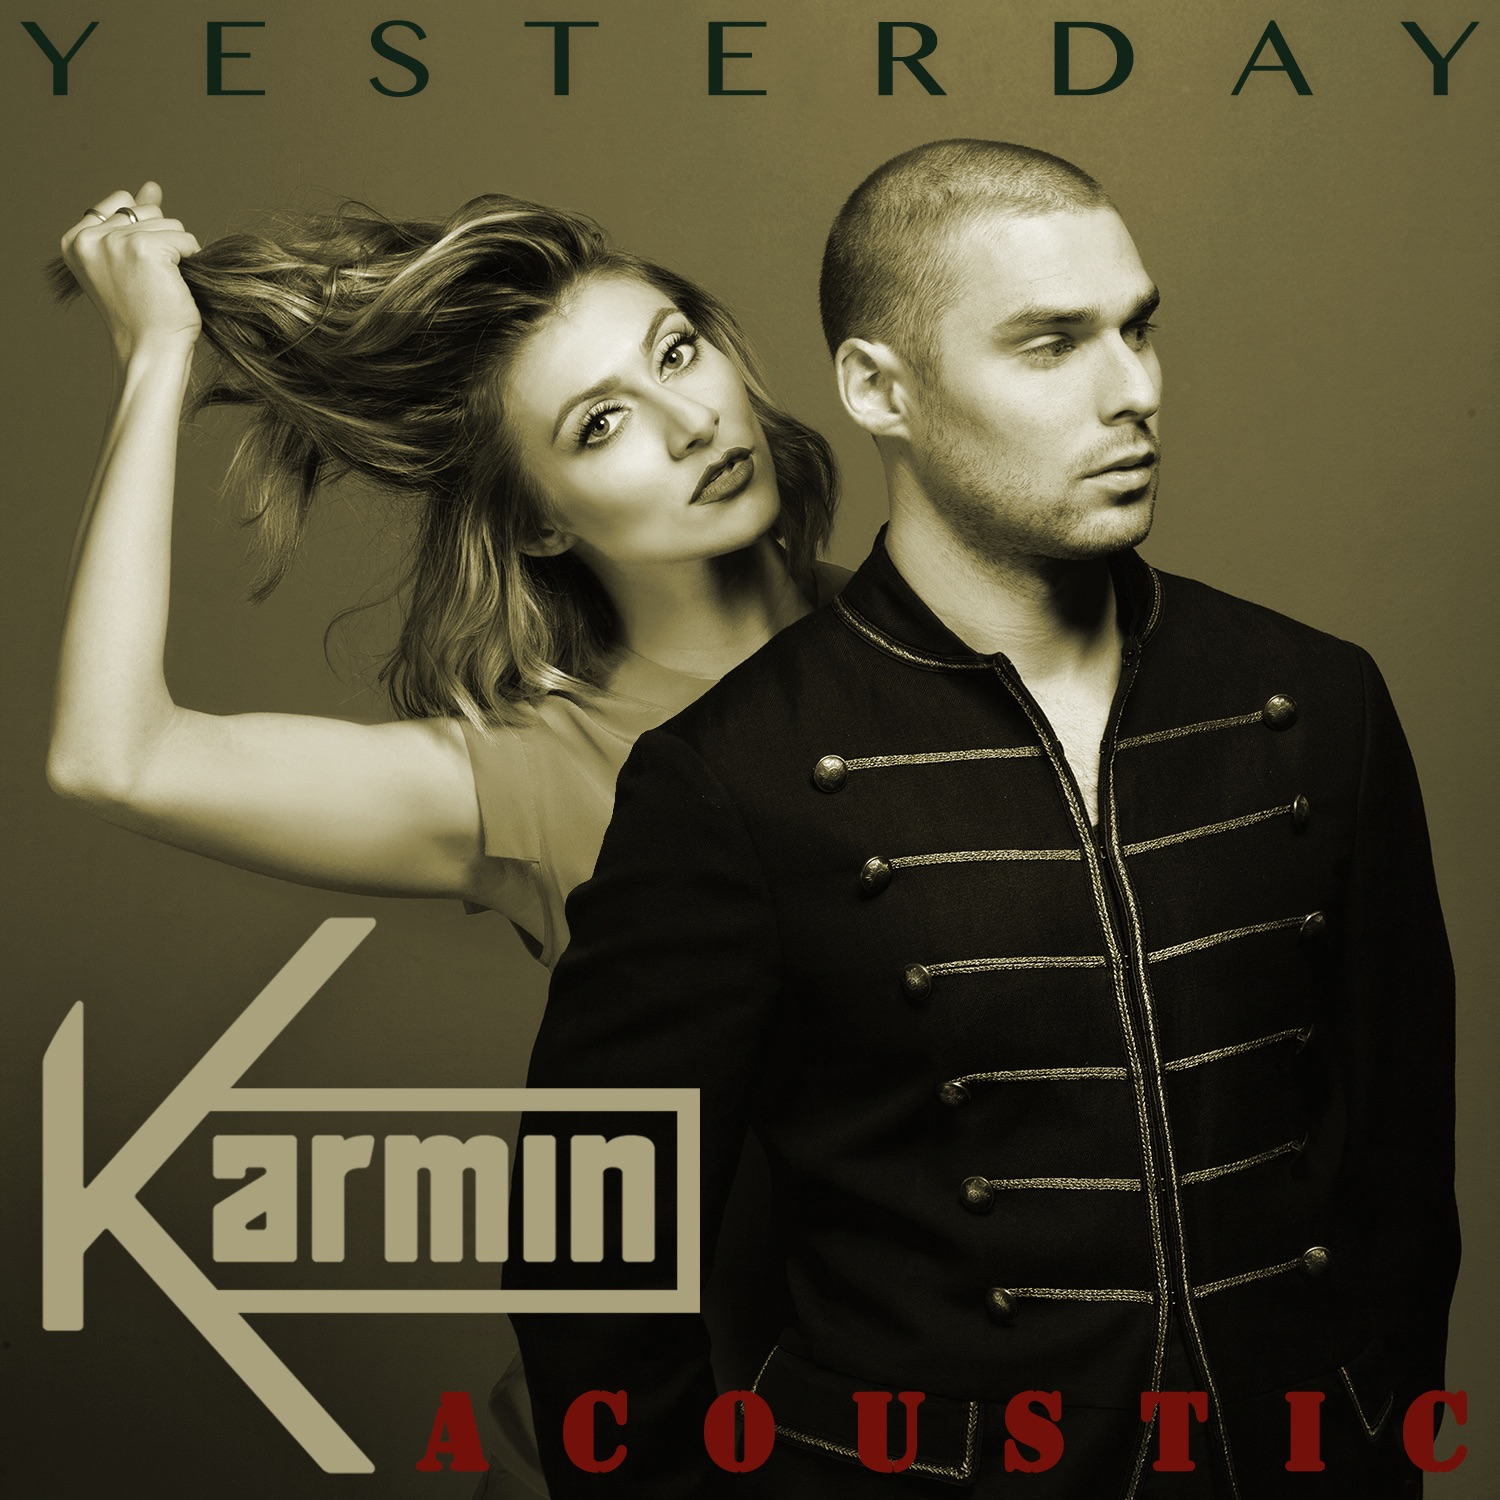 Yesterday (Acoustic) - Single